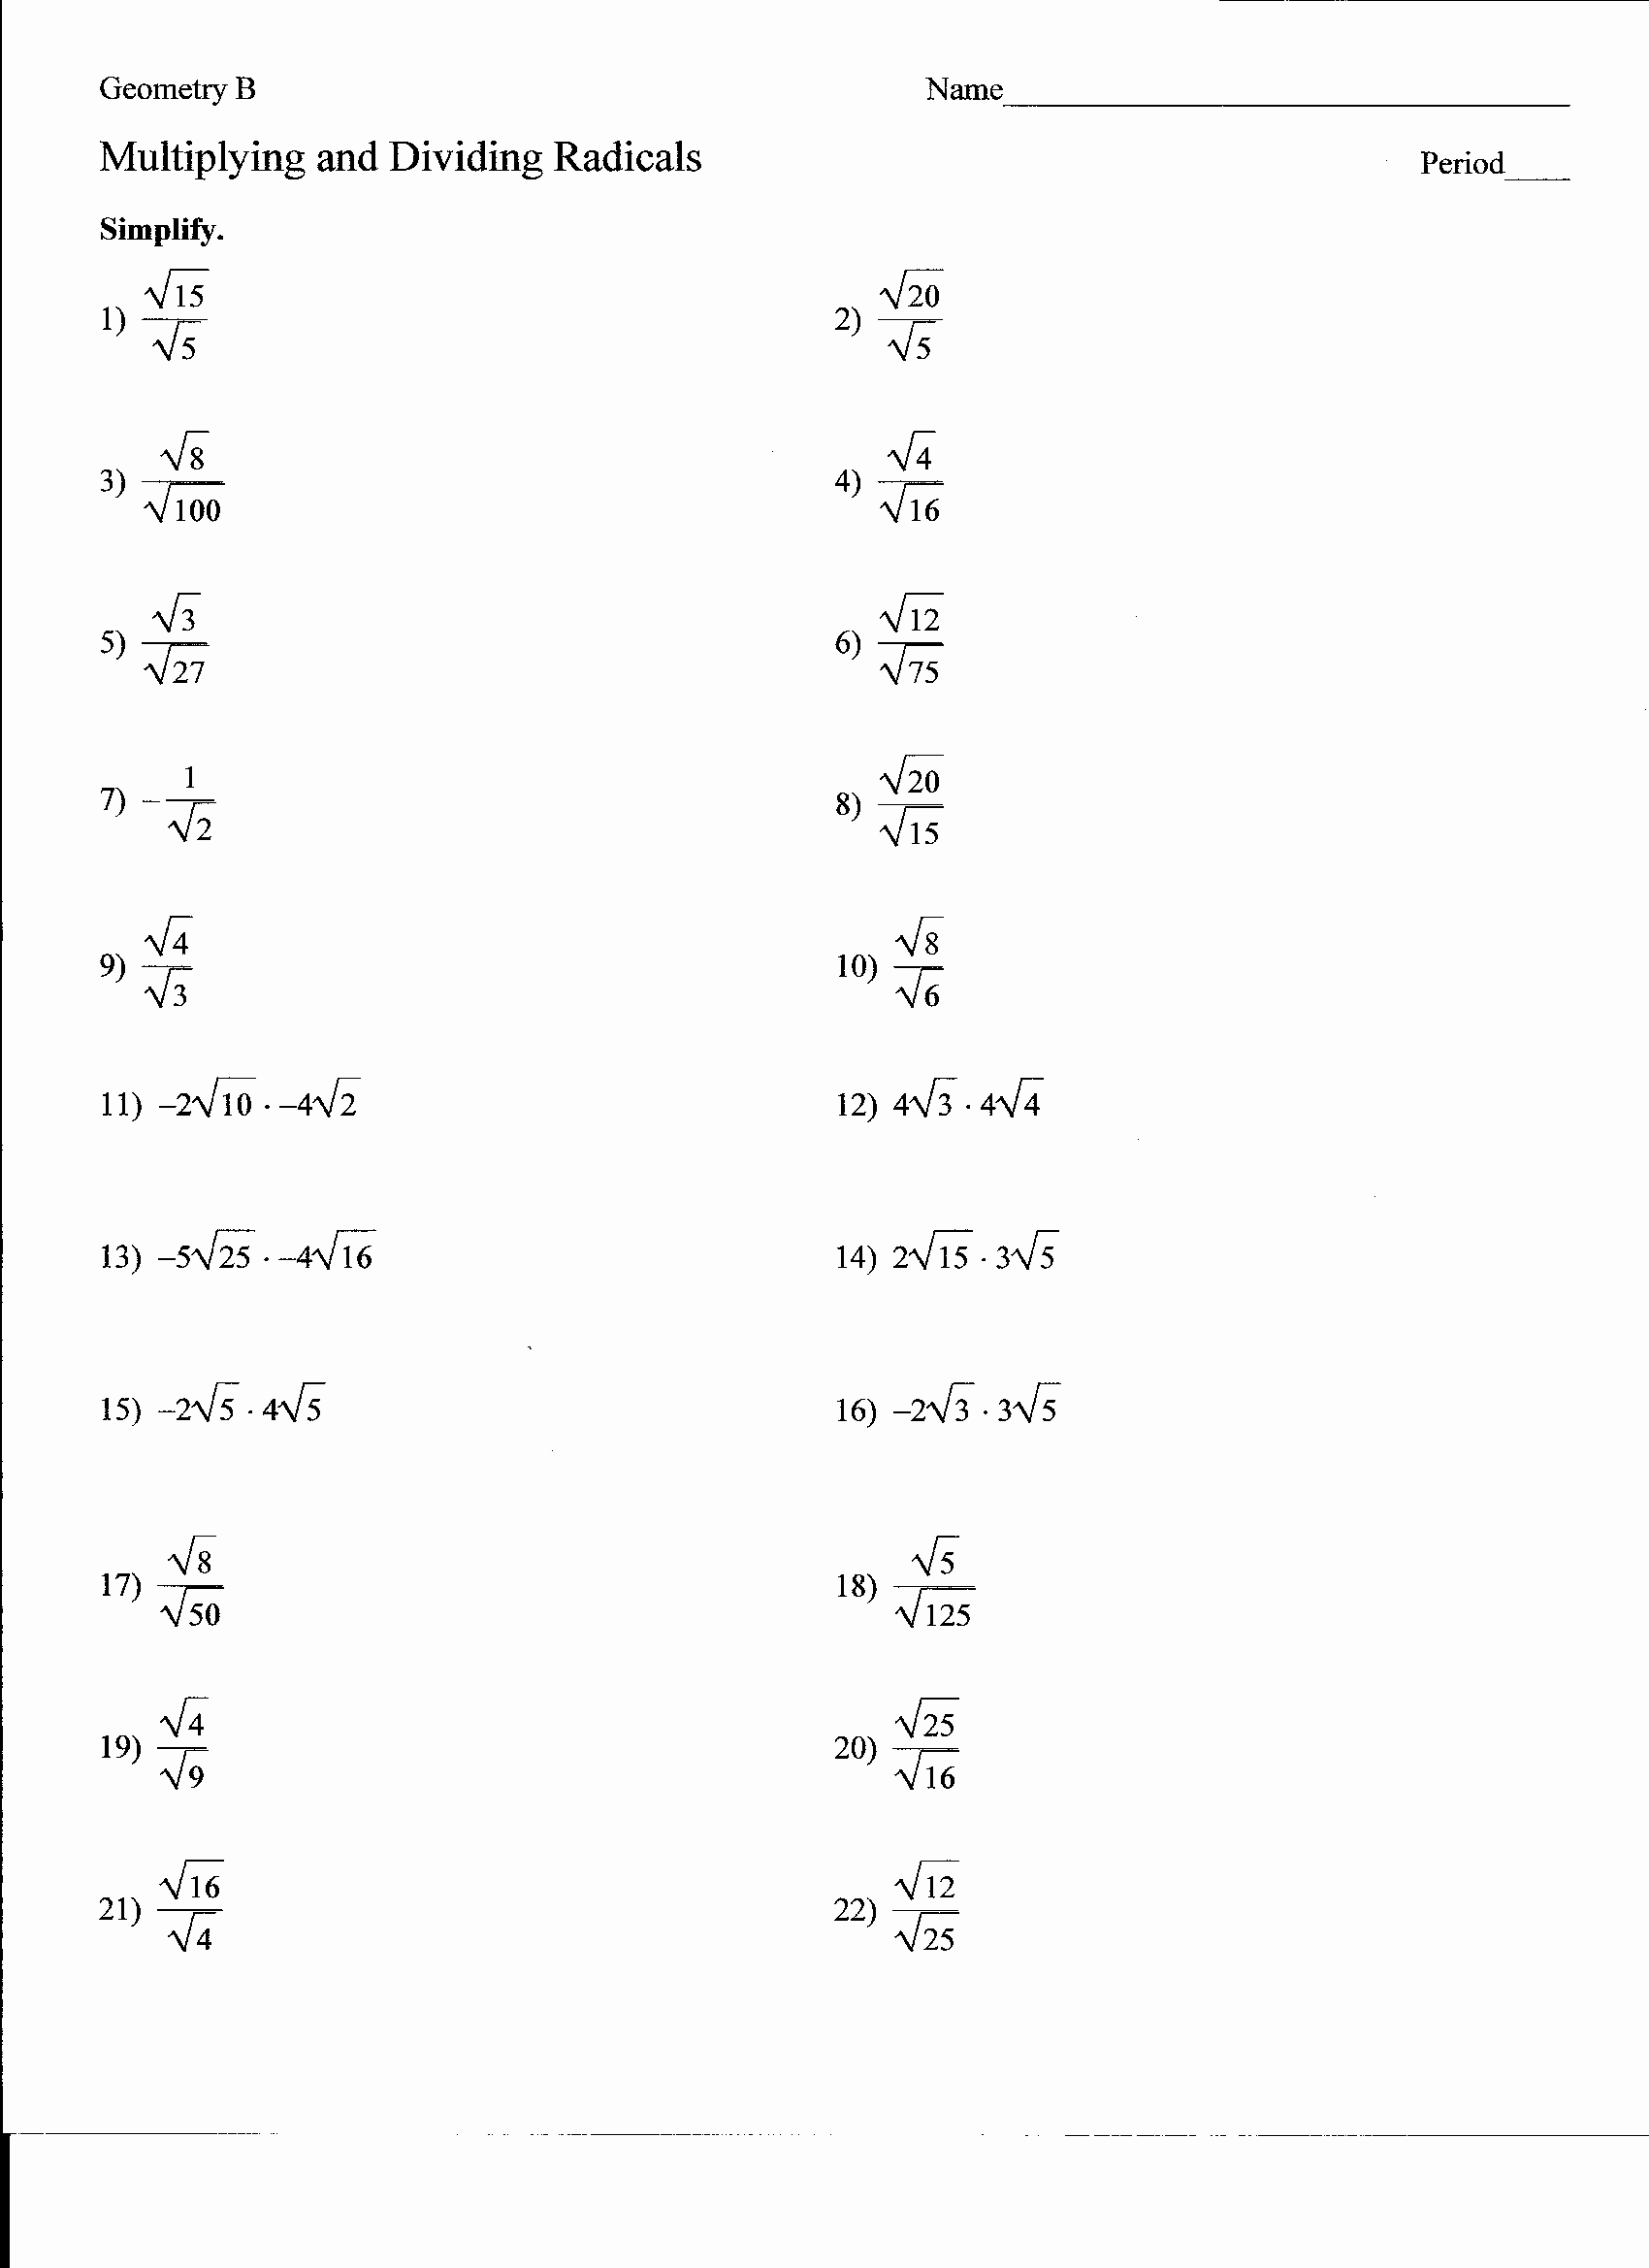 Multiplying Radical Expressions Worksheet Awesome 19 Best Of Multiplying and Dividing Radicals